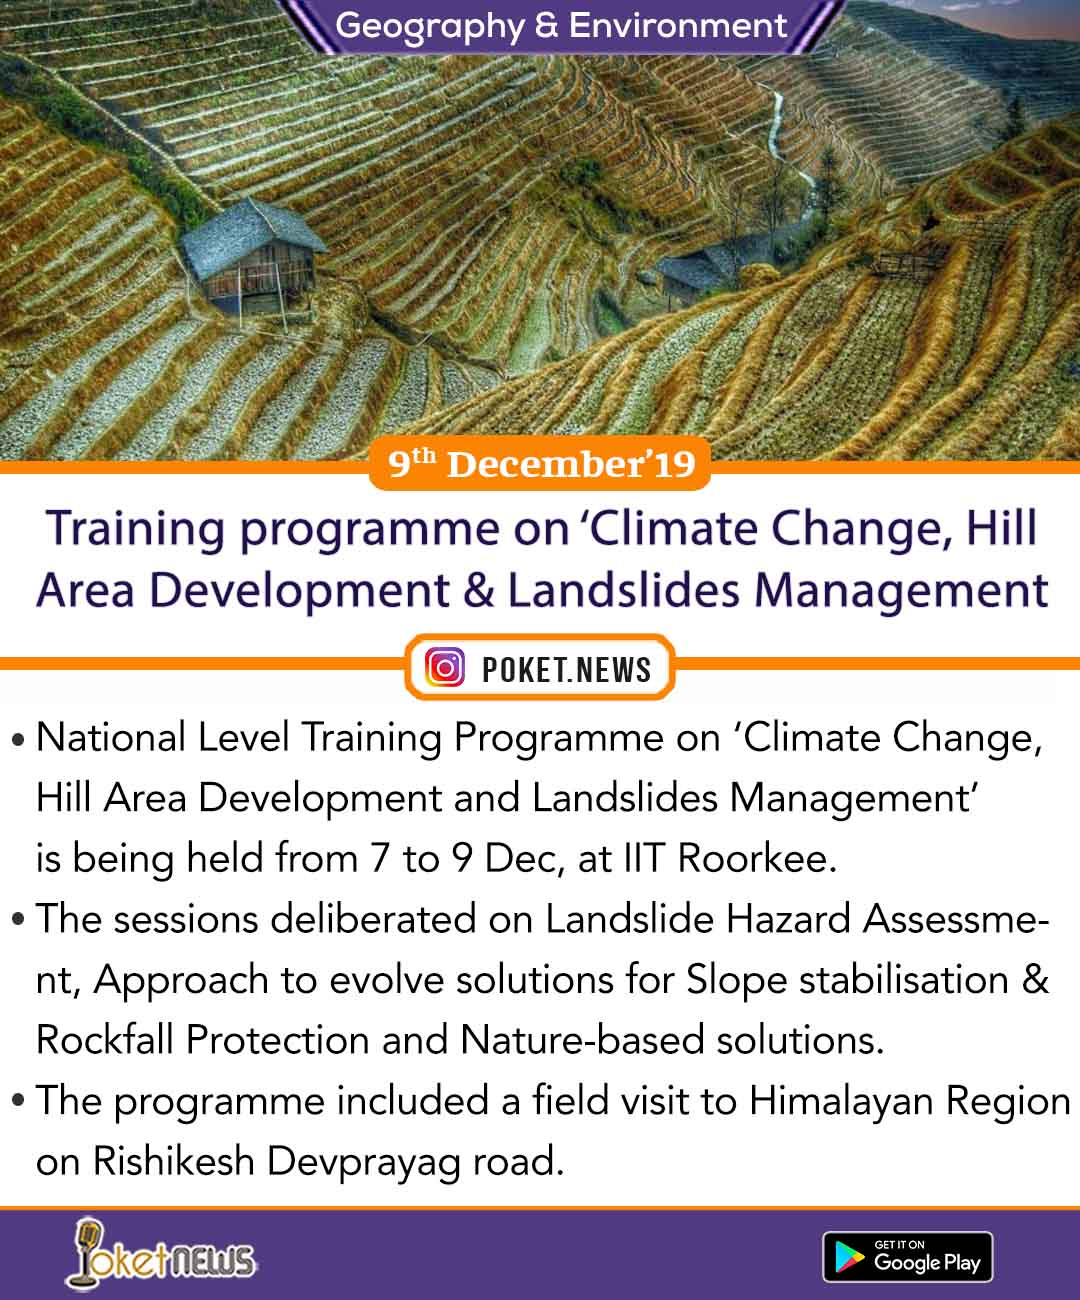 Training programme on 'Climate Change, Hill Area Development & Landslides Management